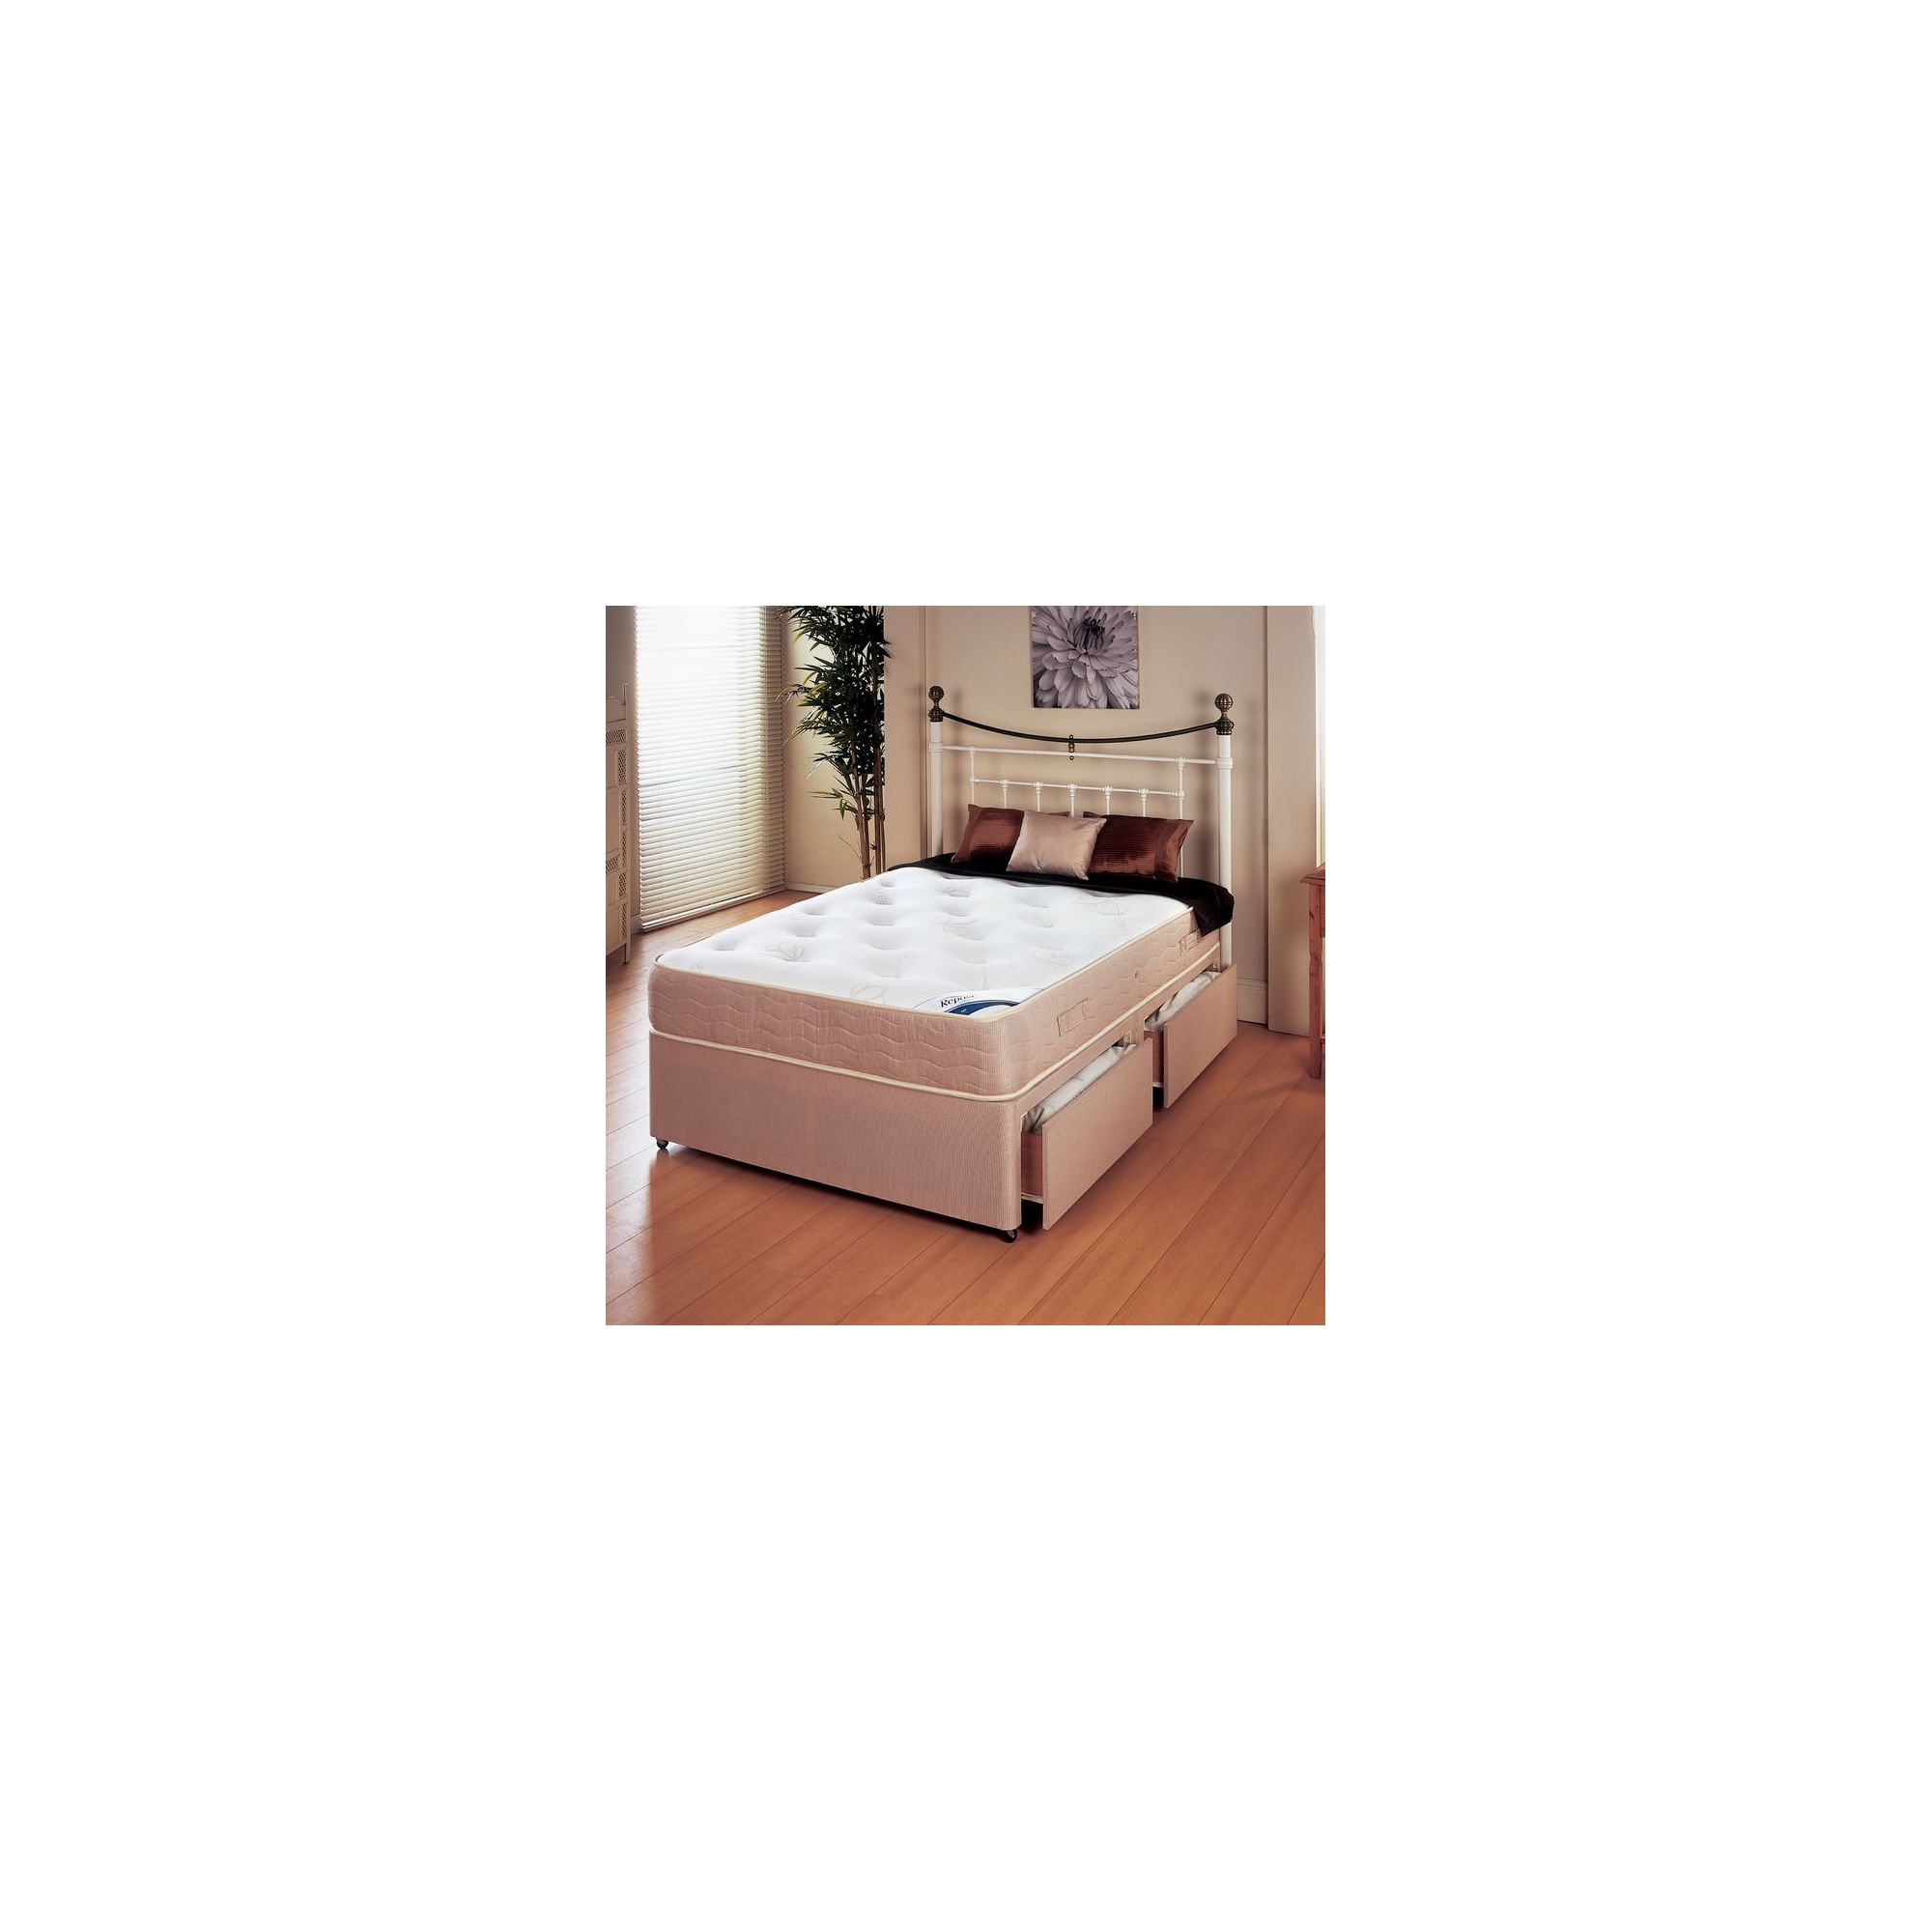 Repose New Princess 1000 Platform Set - Small Double/Double / 2 Drawer at Tesco Direct